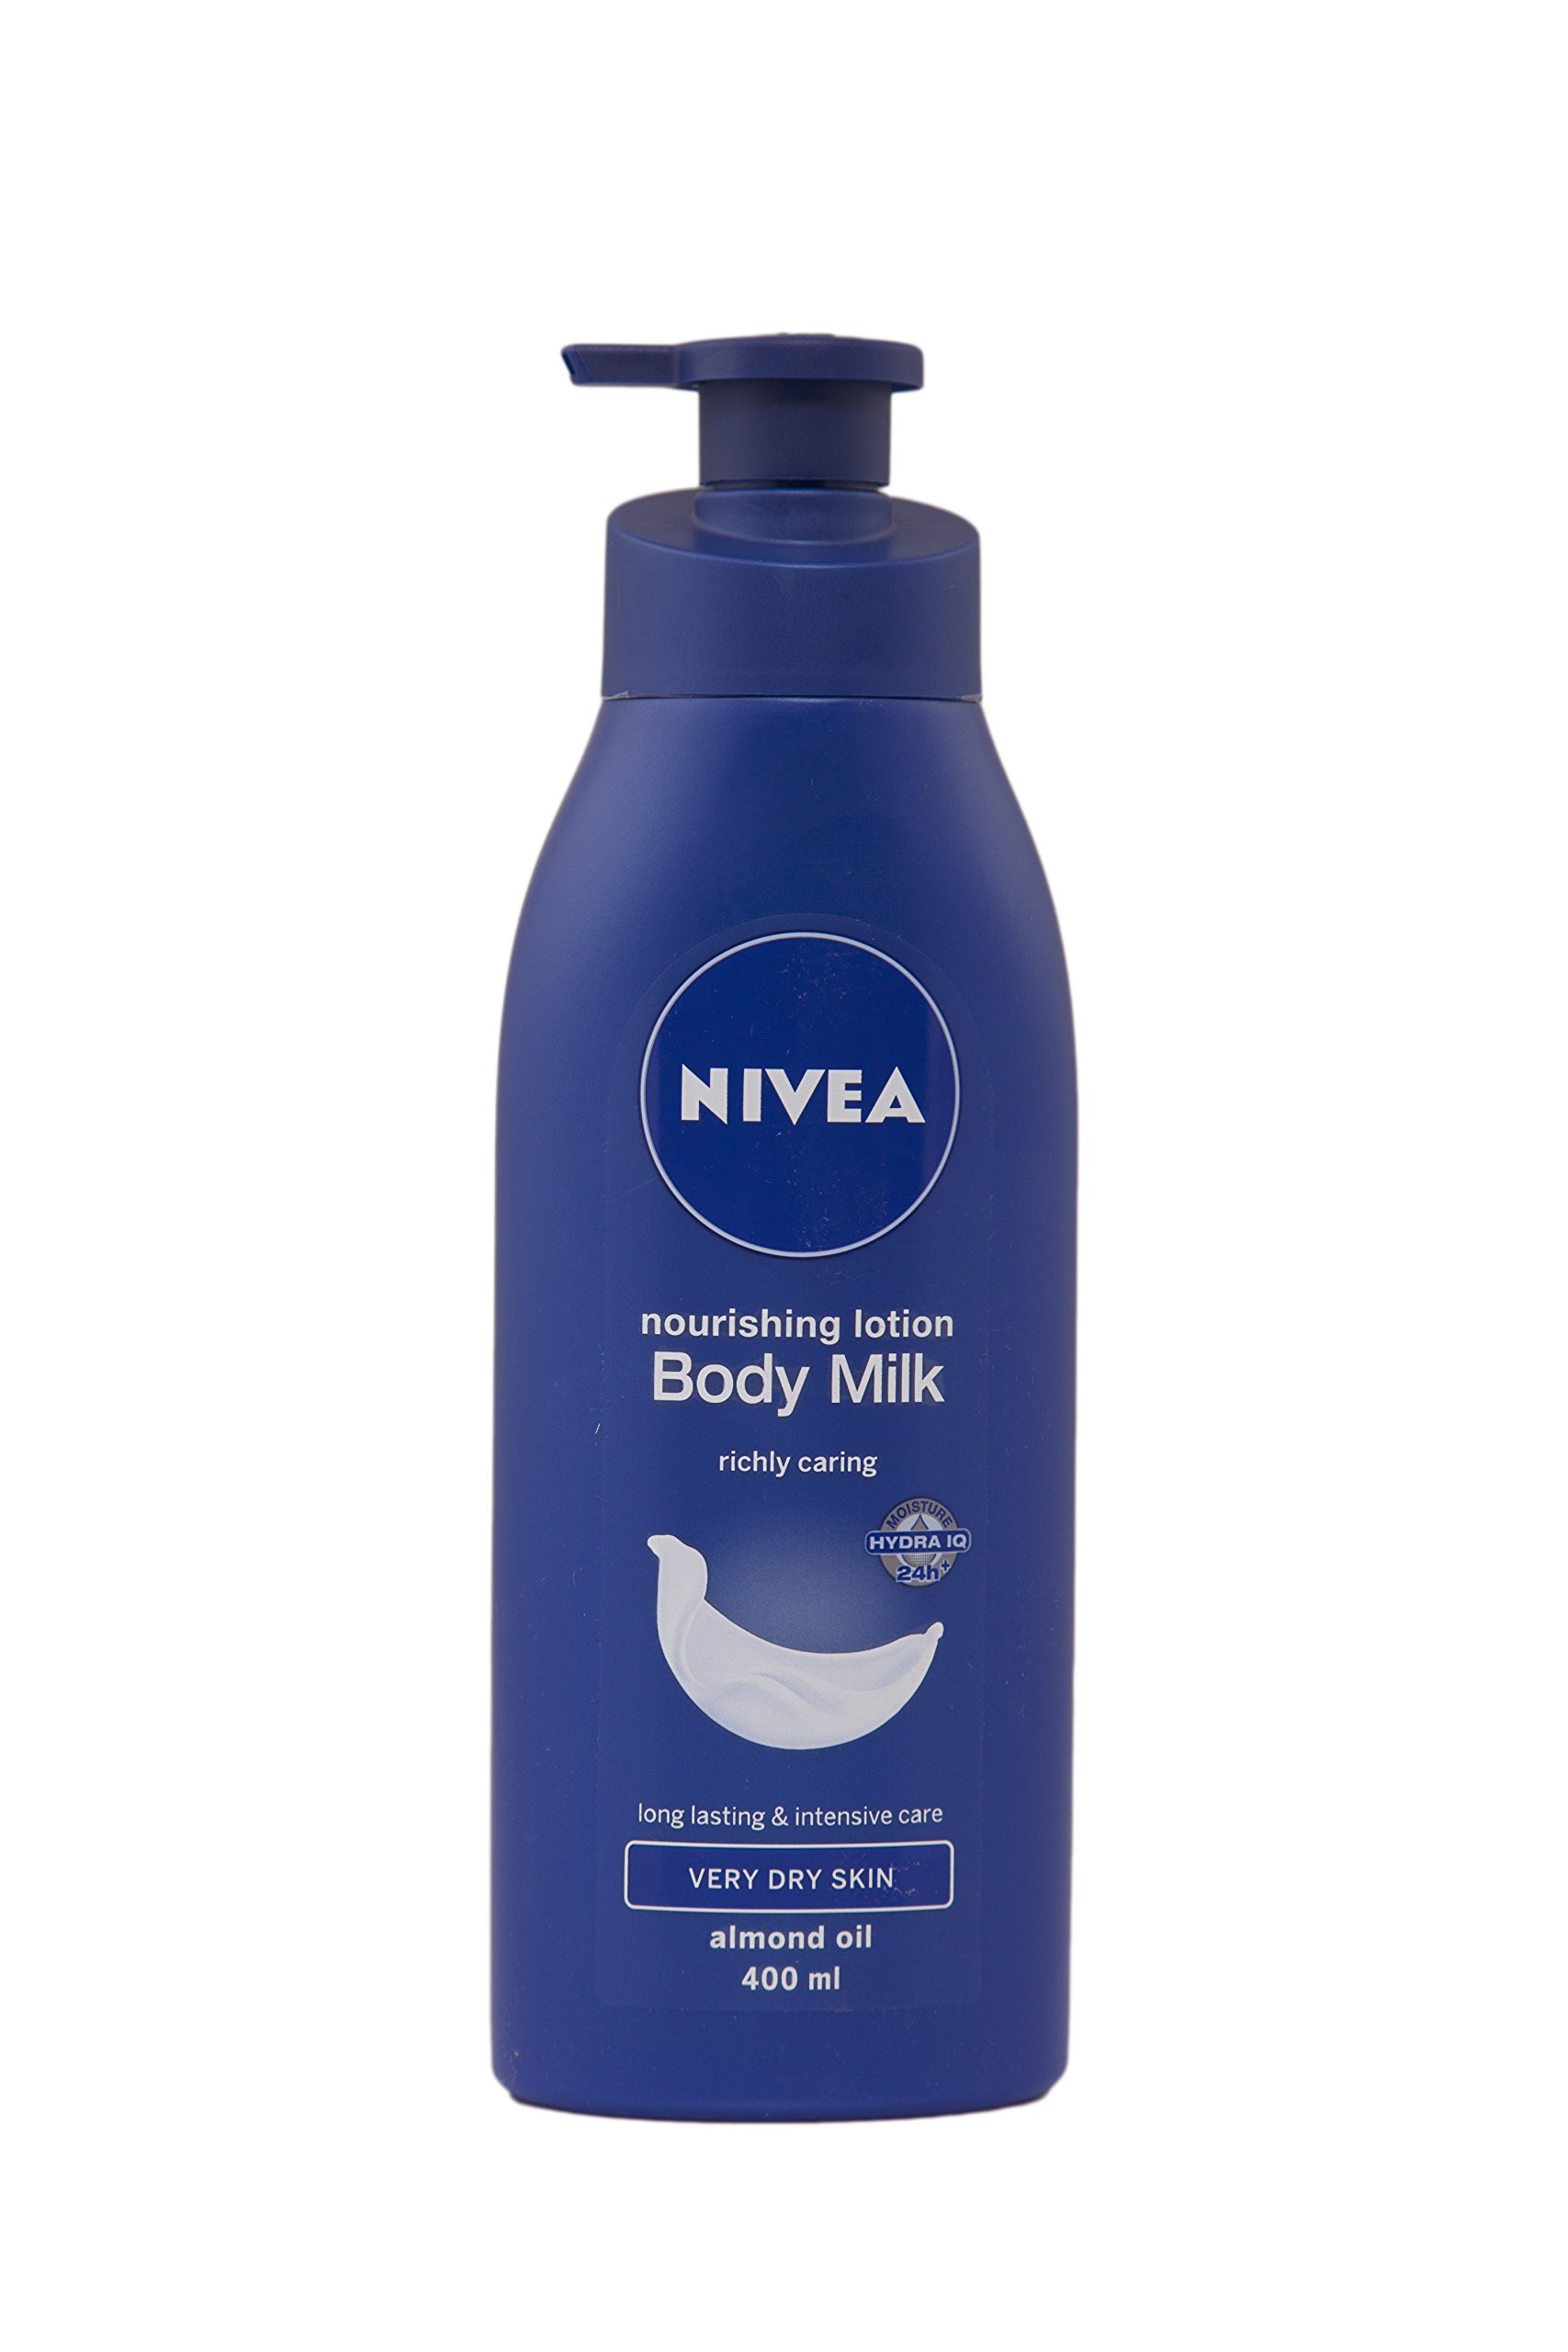 Nivea Nourishing Lotion Body Milk with Deep Moisture Serum and 2x Almond Oil for Very Dry Skin, 400ml product image